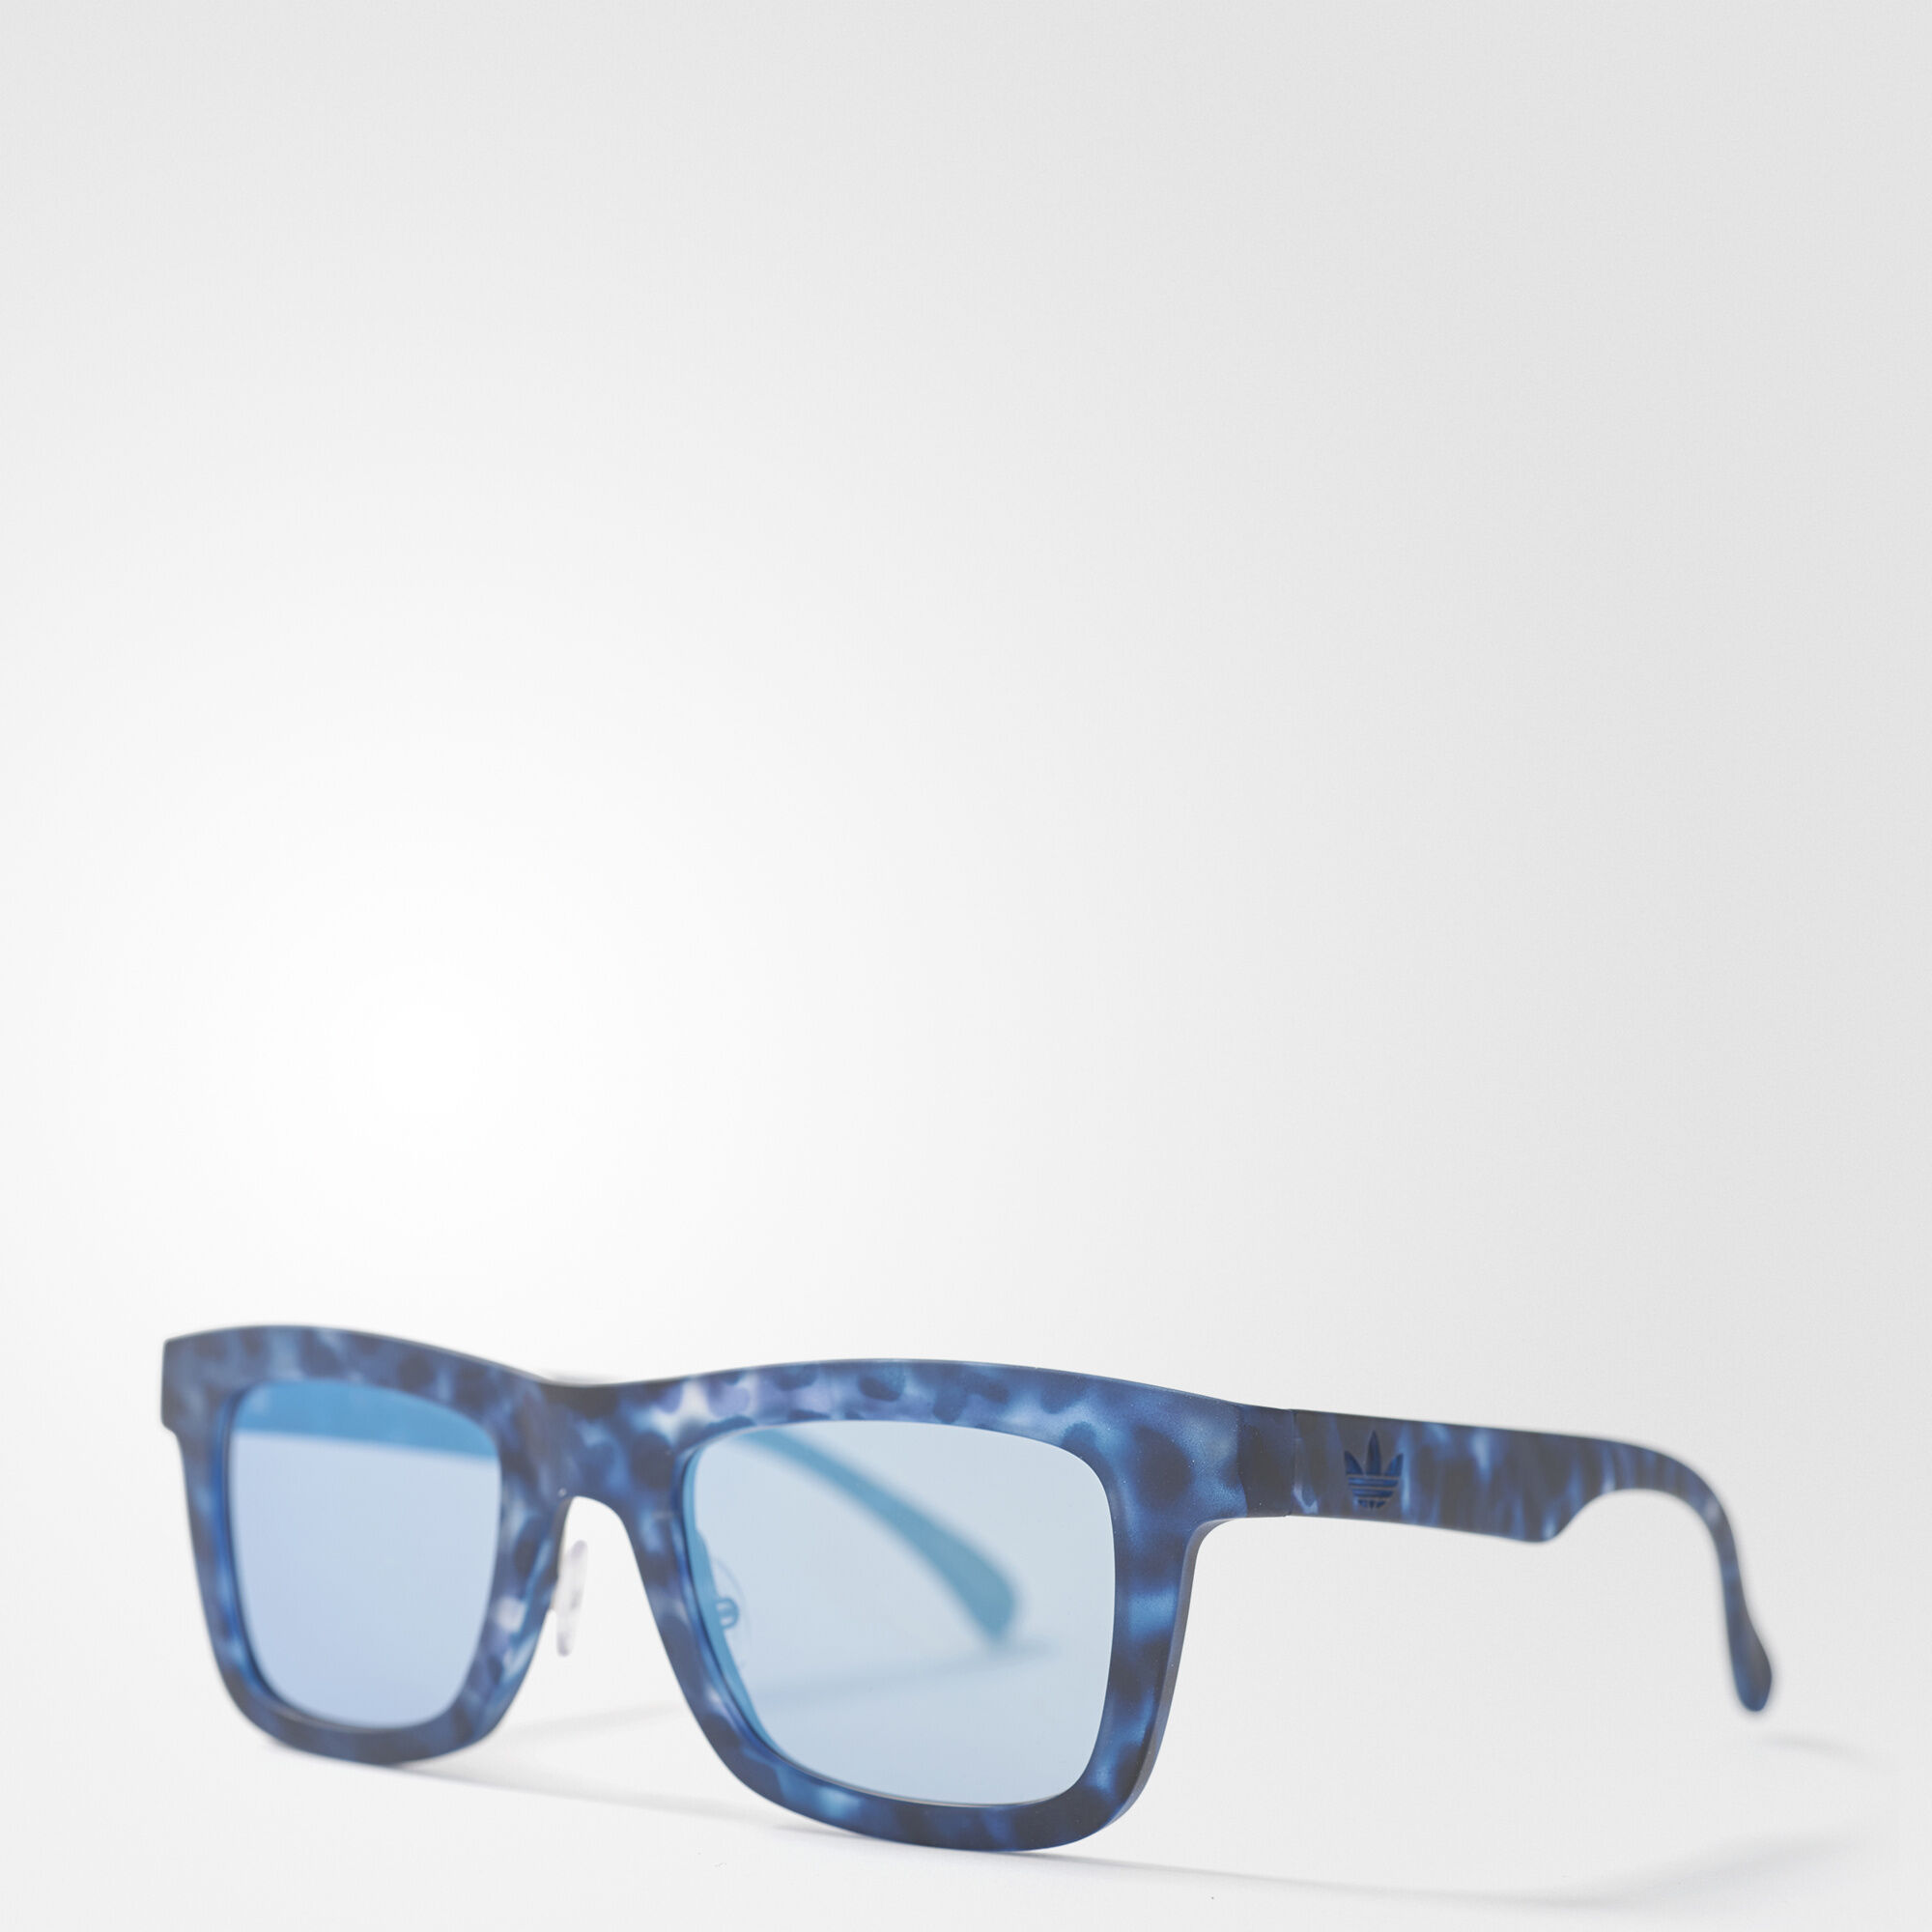 0caf61445917 Buy adidas glasses womens 2014 > OFF66% Discounted